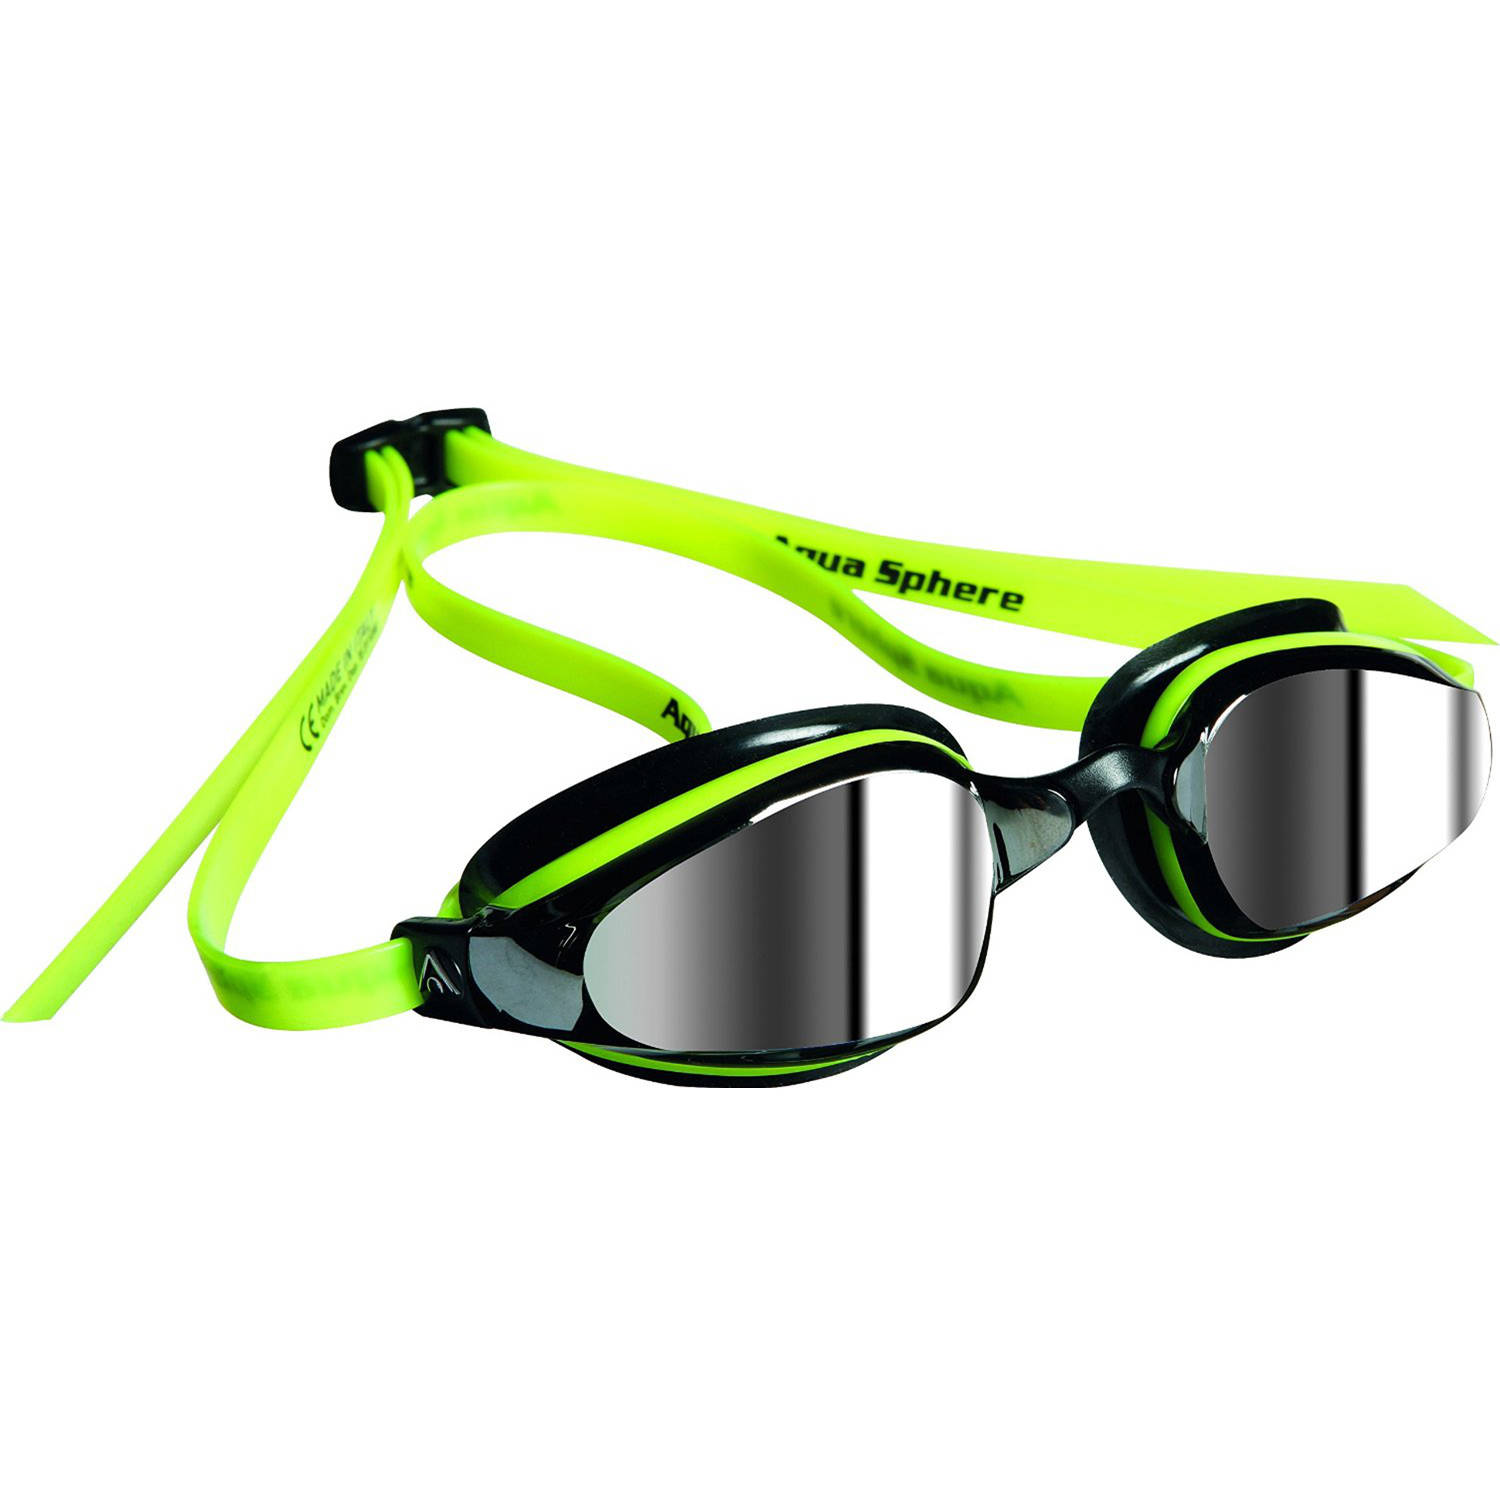 K180 Goggles, Mirrored Lens, Yellow/Black